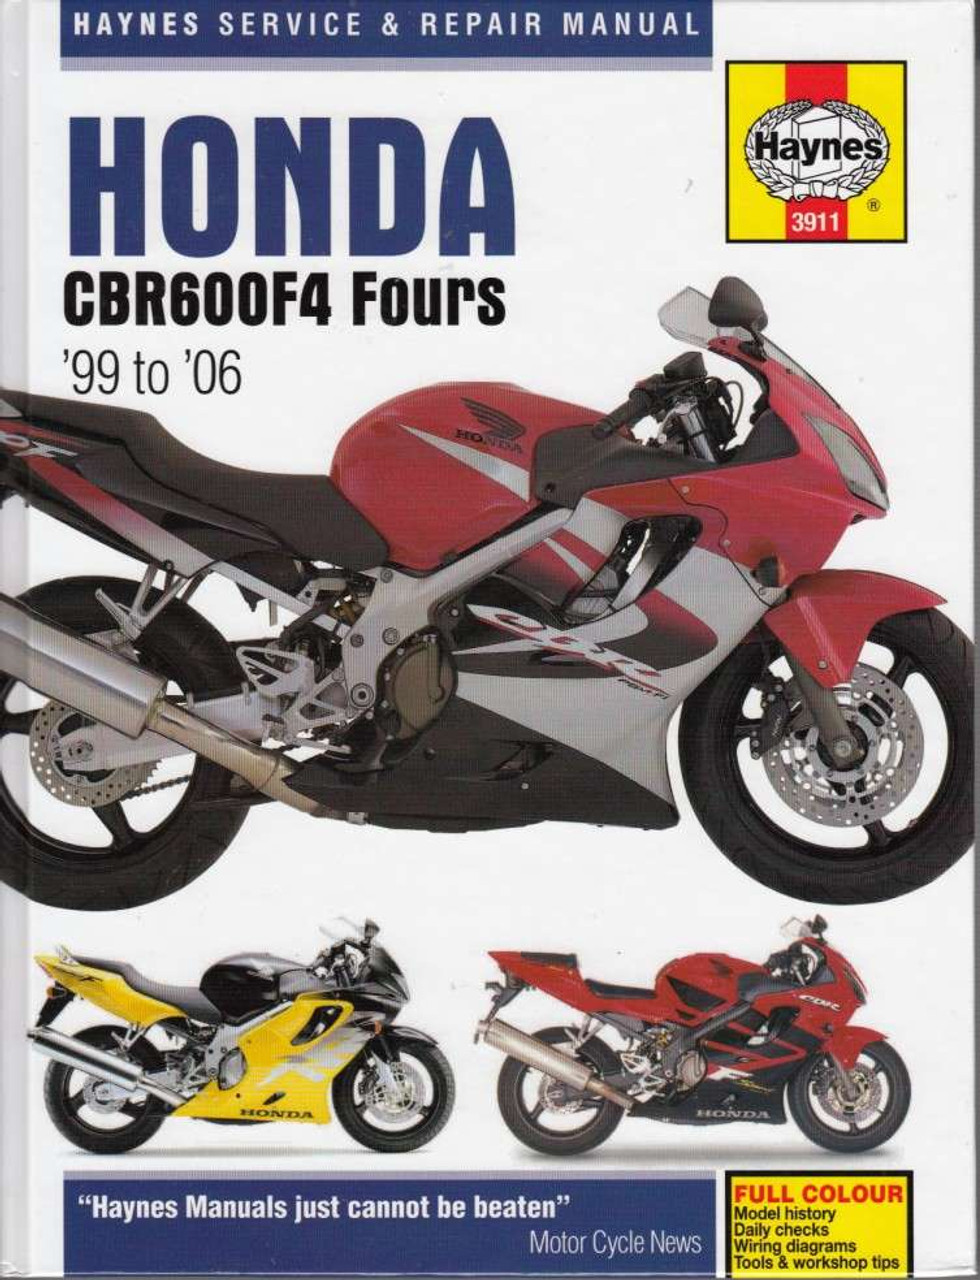 hight resolution of b8617b honda cbr600f4 fours repair manual 35474 1374803340 jpg c 2 imbypass on imbypass on